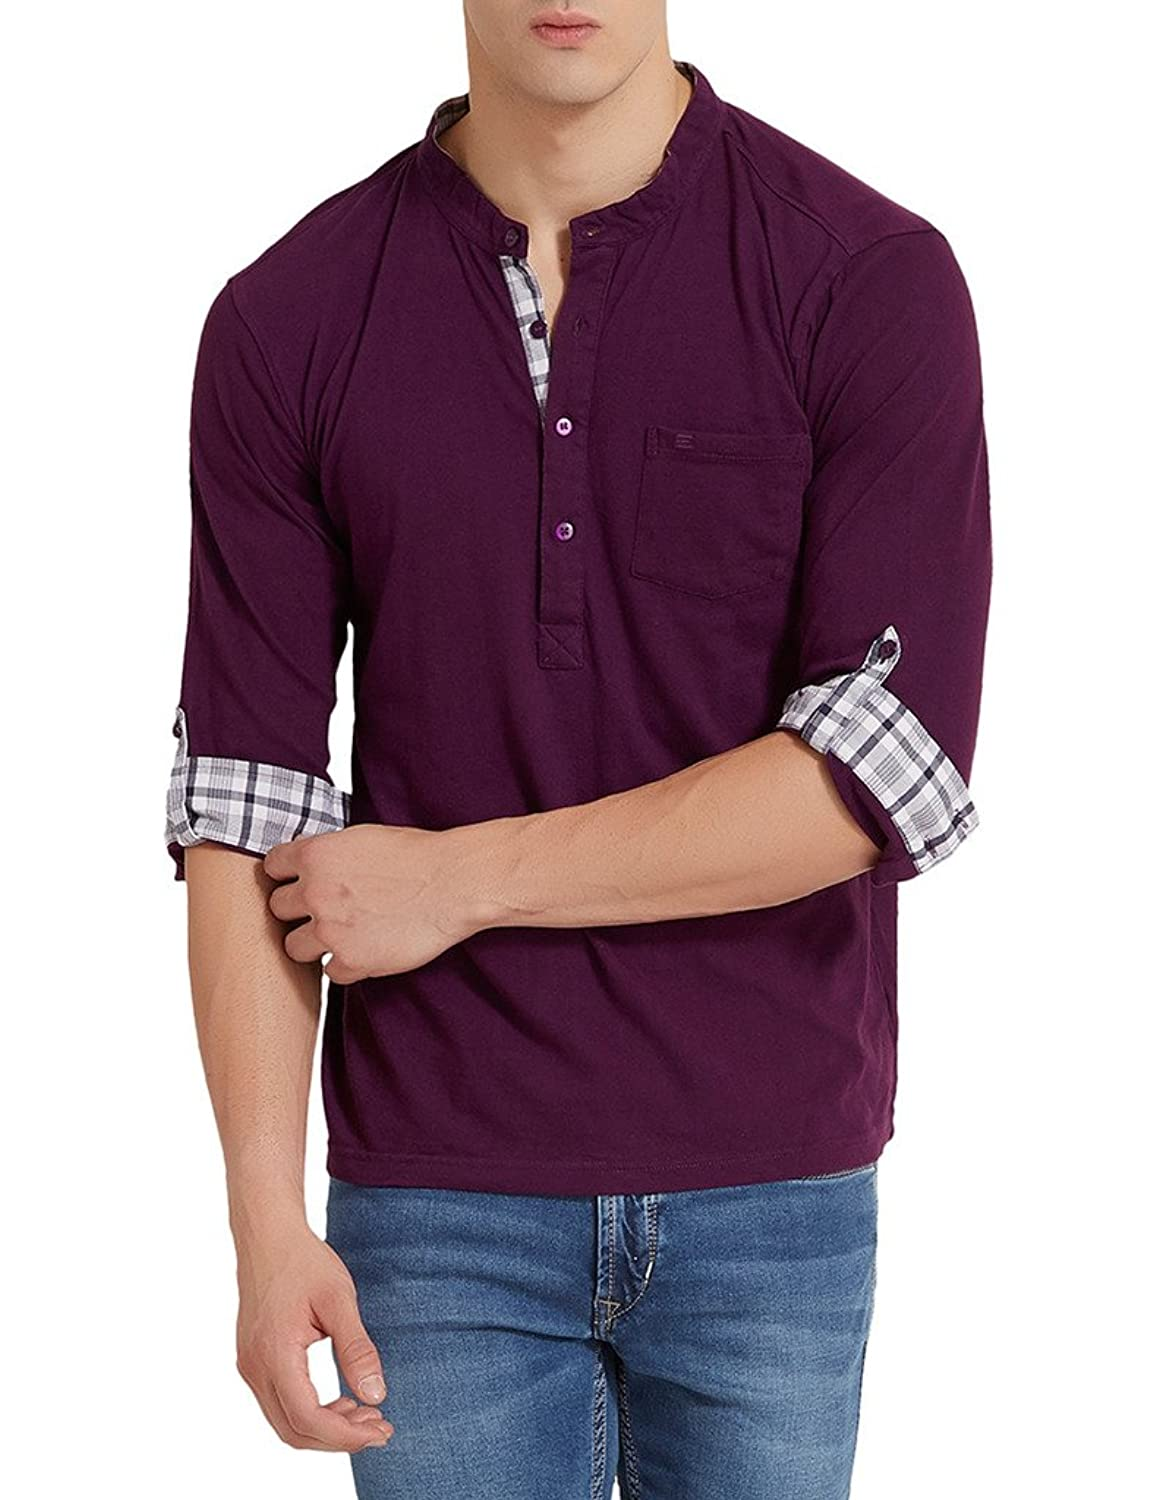 Elaborado Men's Henley Neck Tshirt - Imperial Purple